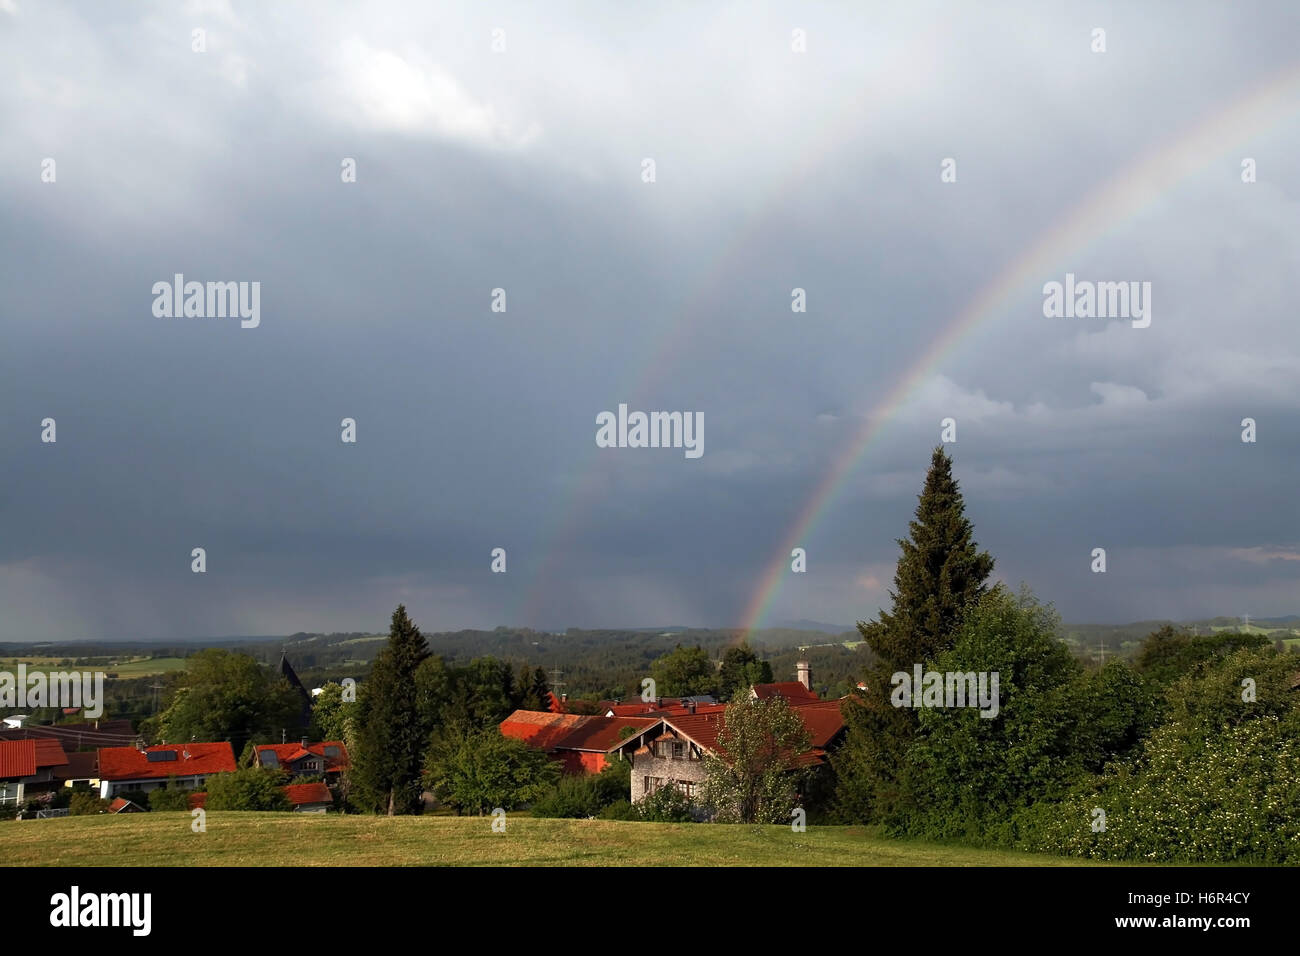 the rainbow over the church - Stock Image